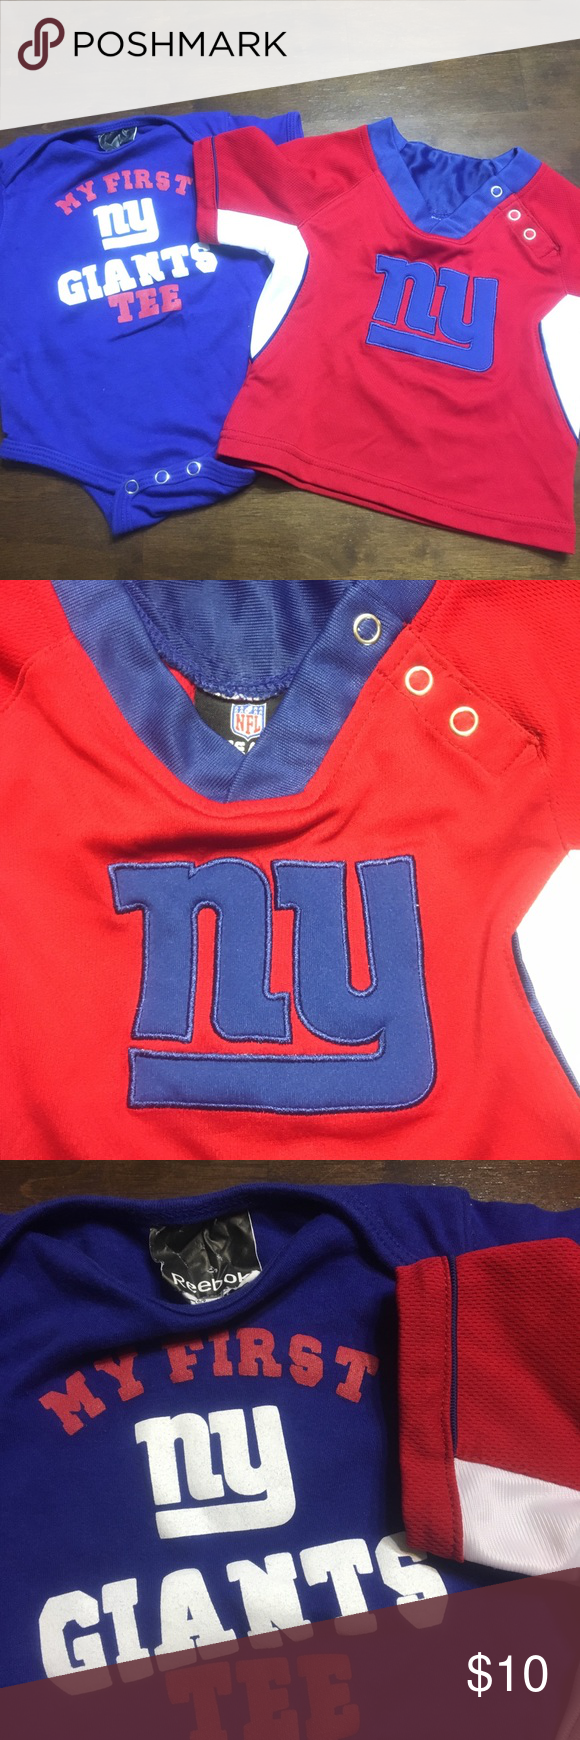 0fe881ee9 Boys New York Giants shirt Giants onesie Reebok brand size 6-9 months and jersey  NFL team apparel size 12months Reebok Shirts   Tops